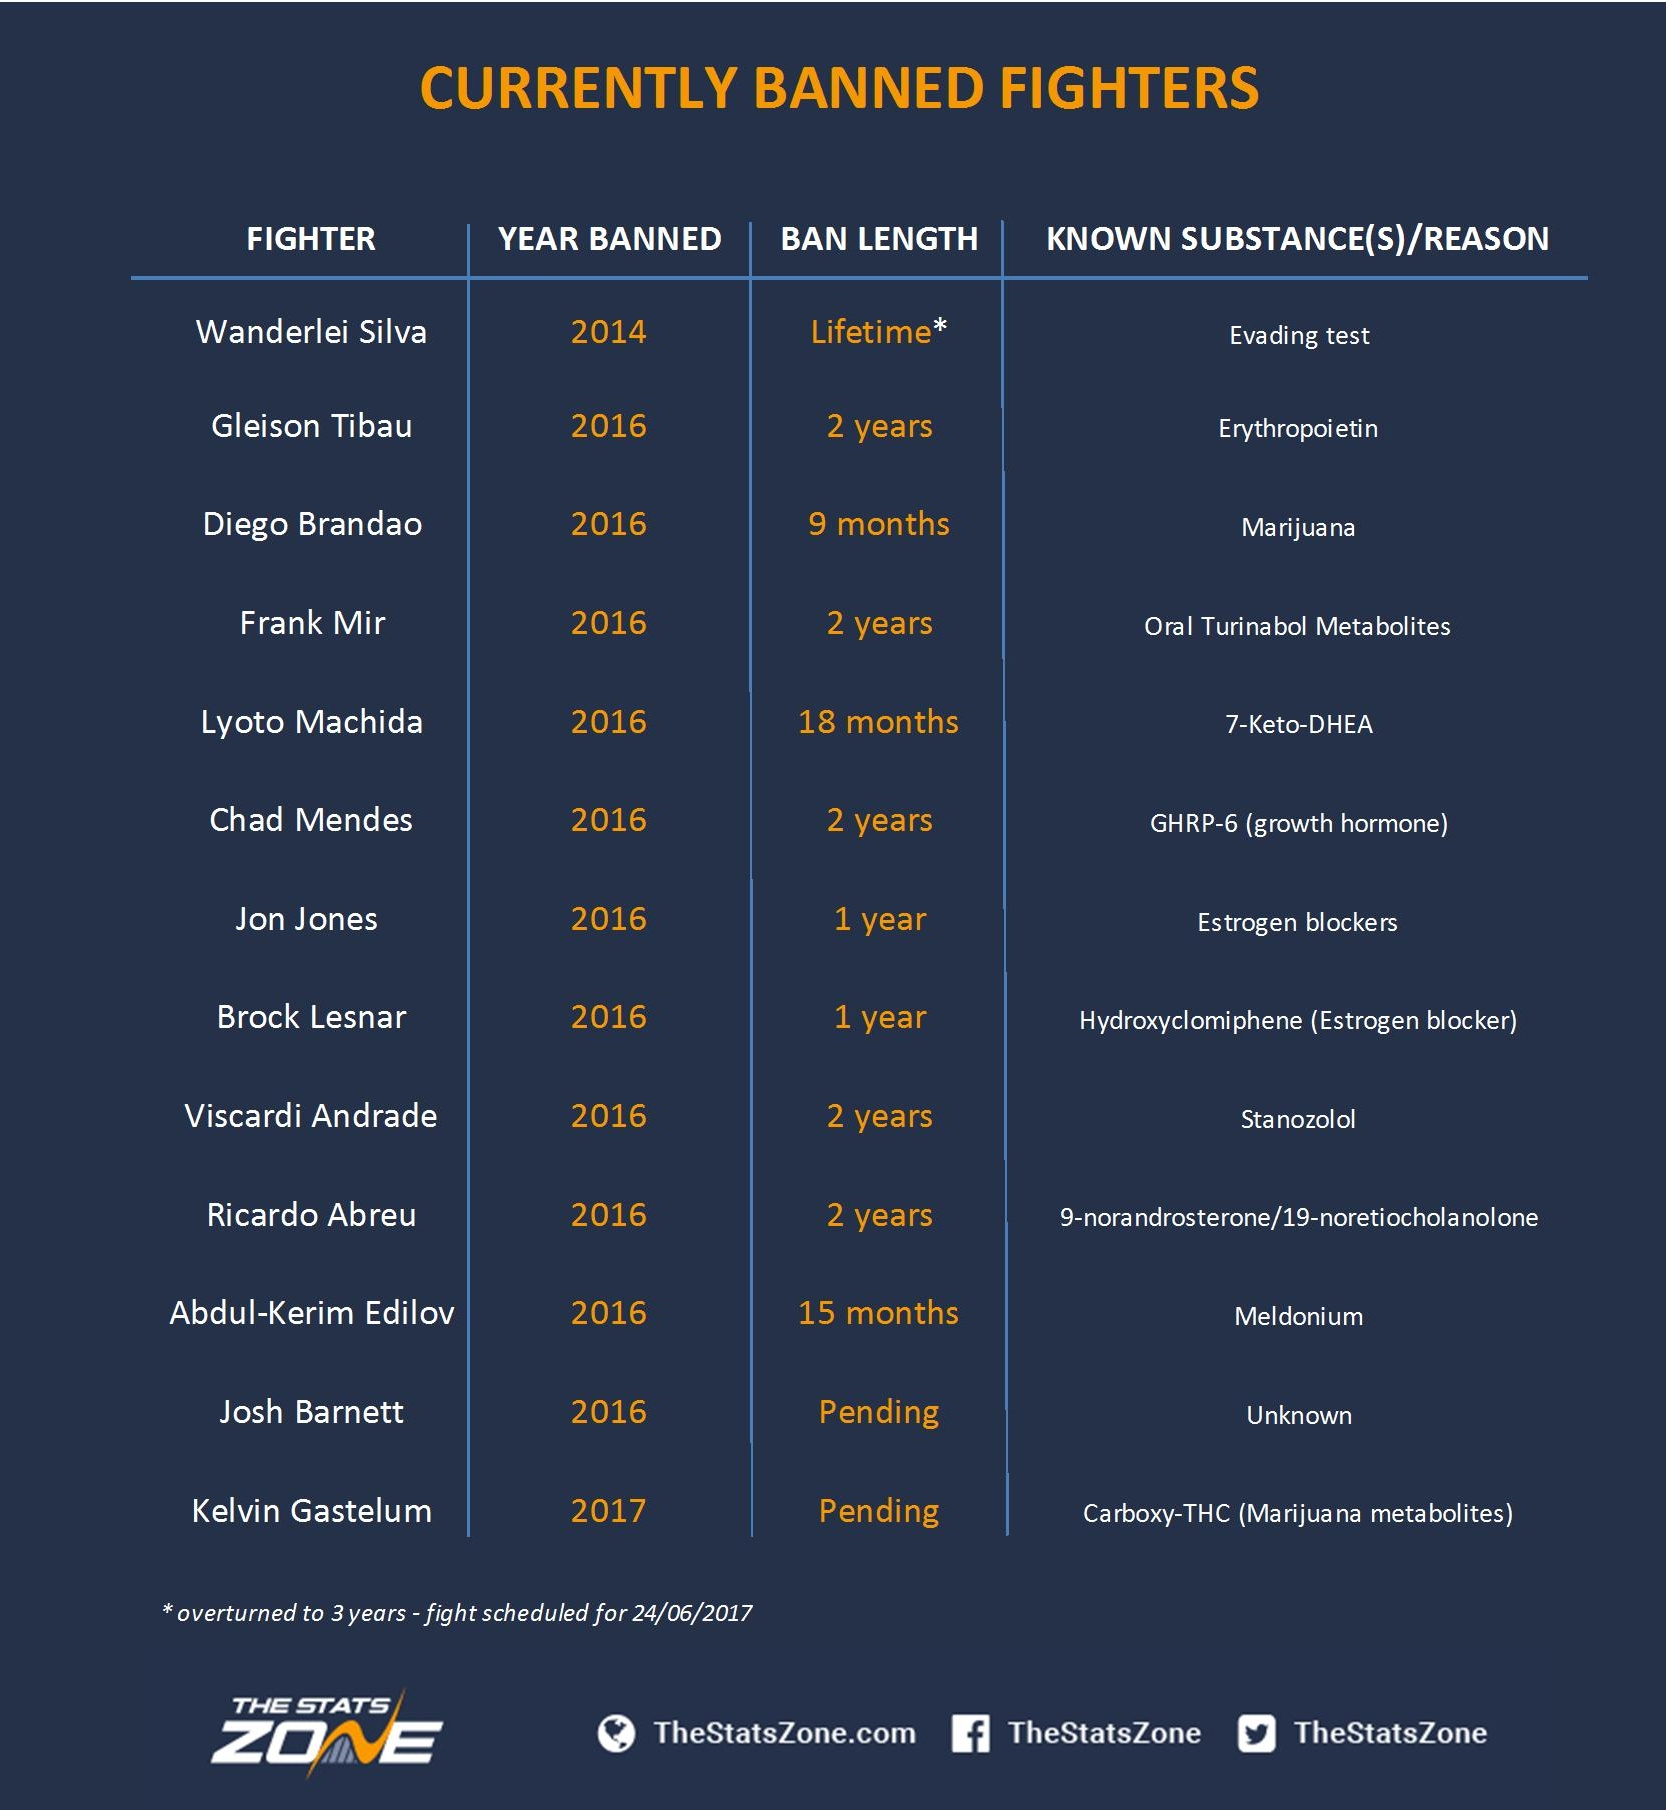 Currently banned fighters